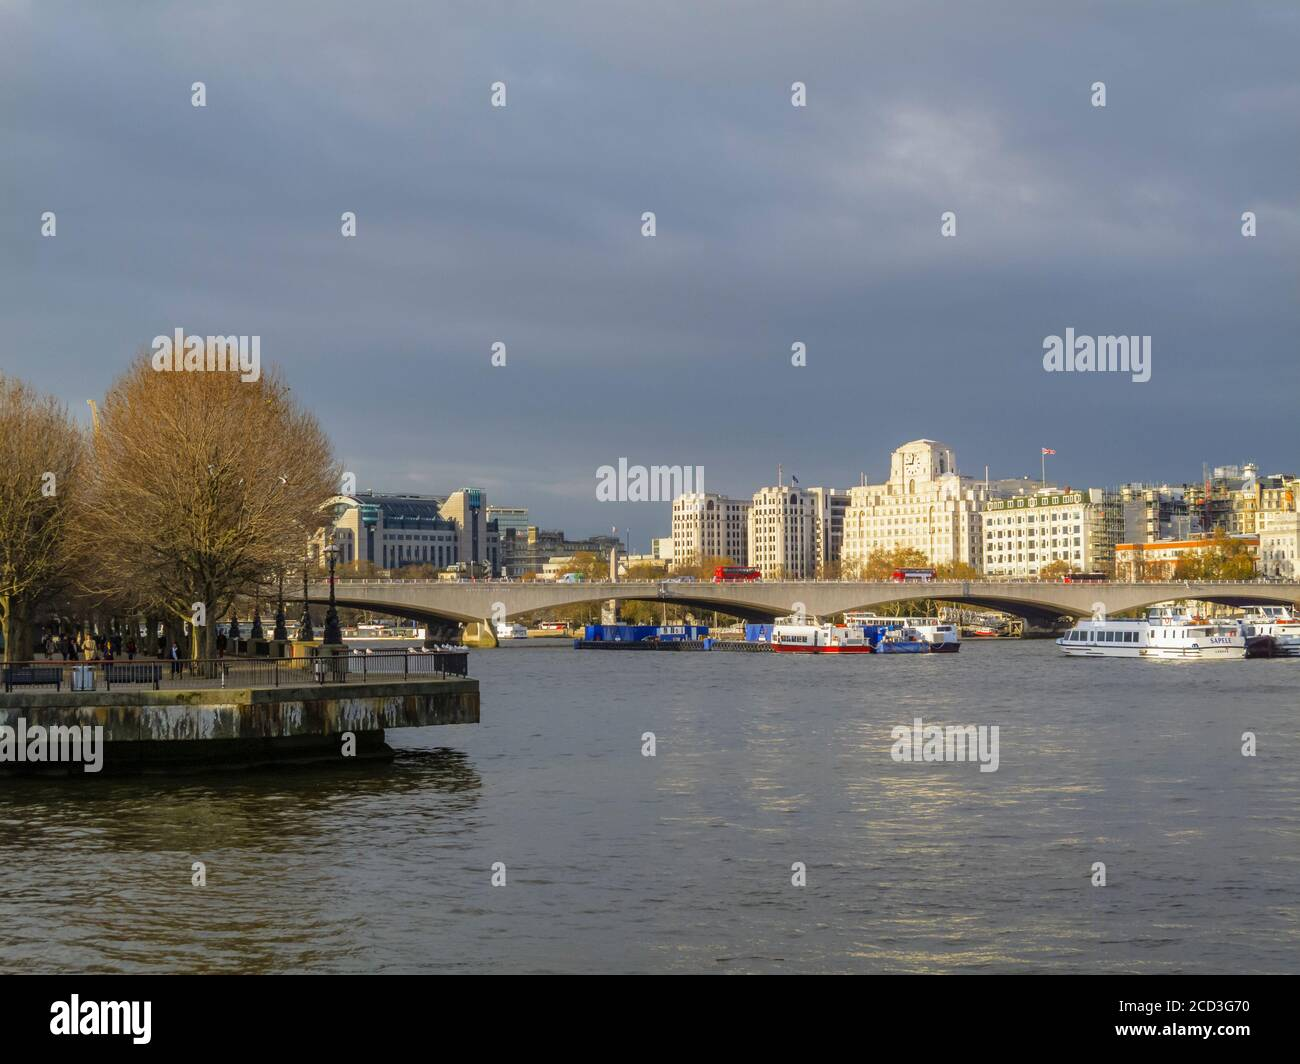 View along the River Thames over Waterloo Bridge to Shell Mex House, 80 Strand, and Charing Cross Station in winter under grey skies Stock Photo